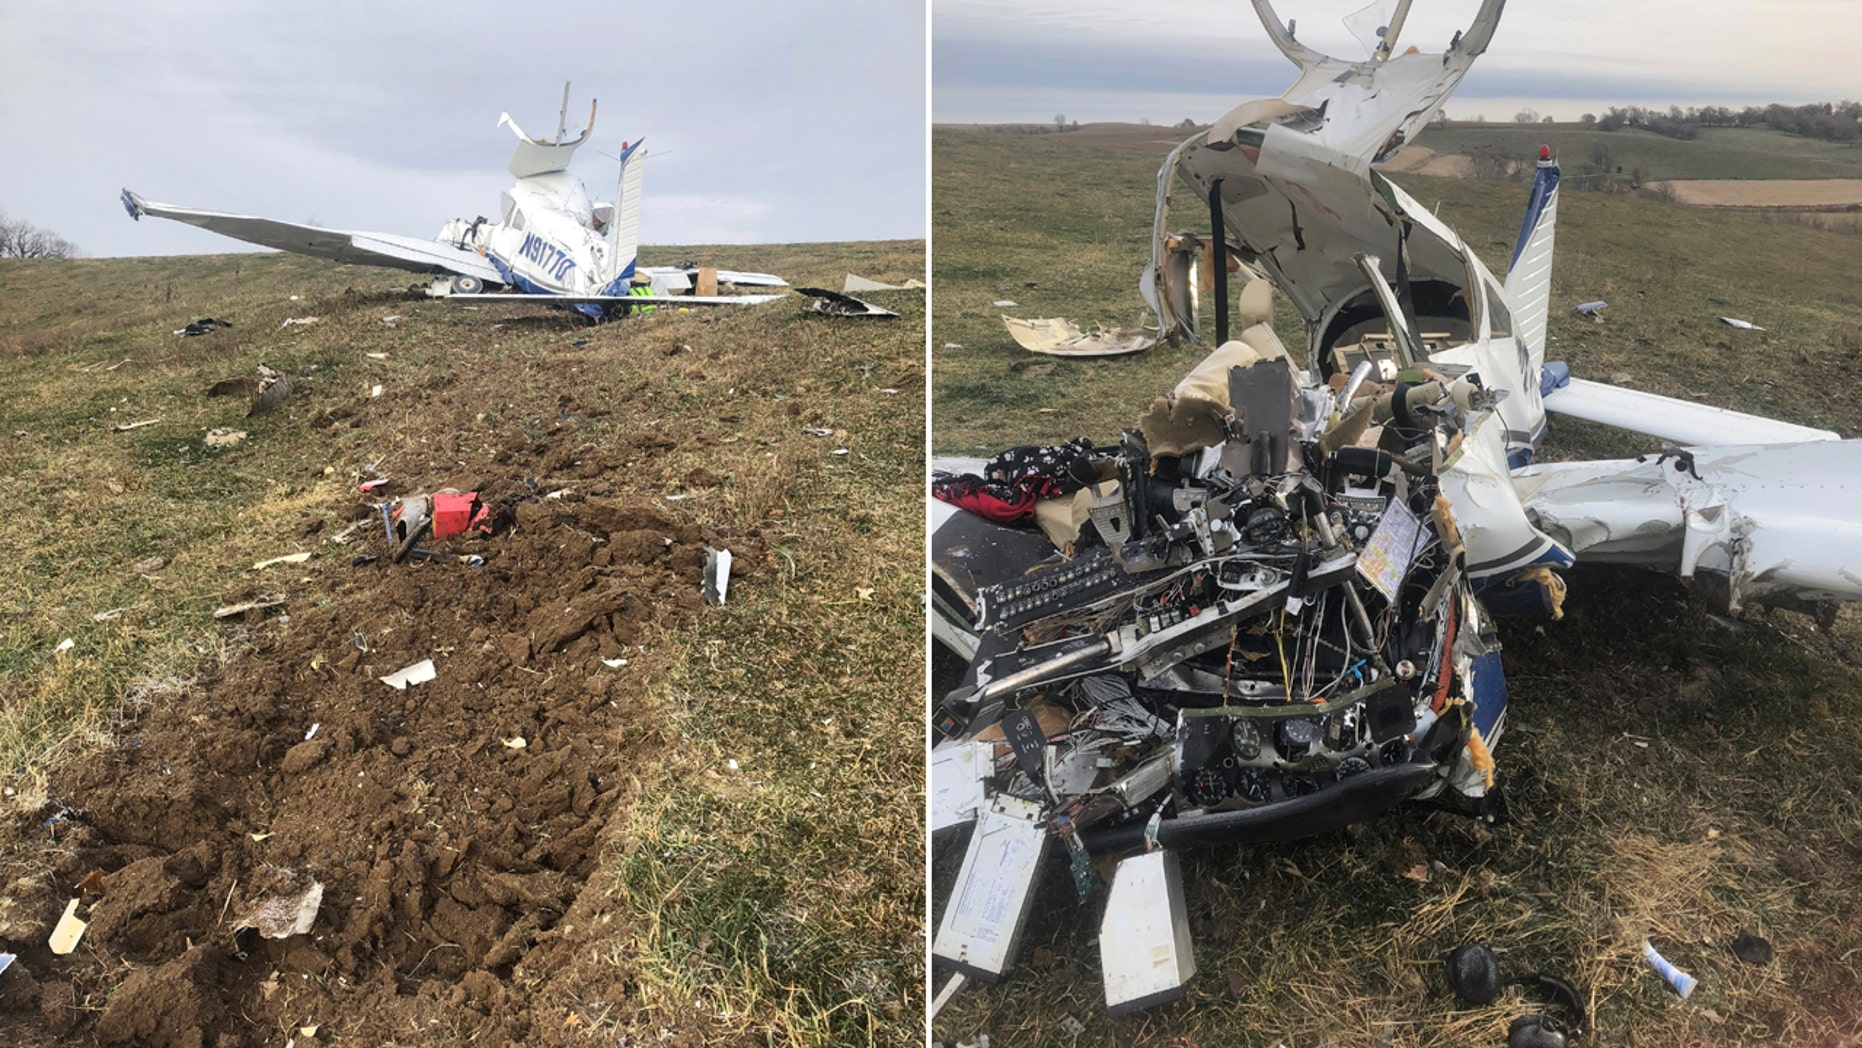 This Saturday photo provided by Guthrie County Sheriff's Department shows where a small plane crashed in central Iowa, killing all four people on board, including a teenage girl.